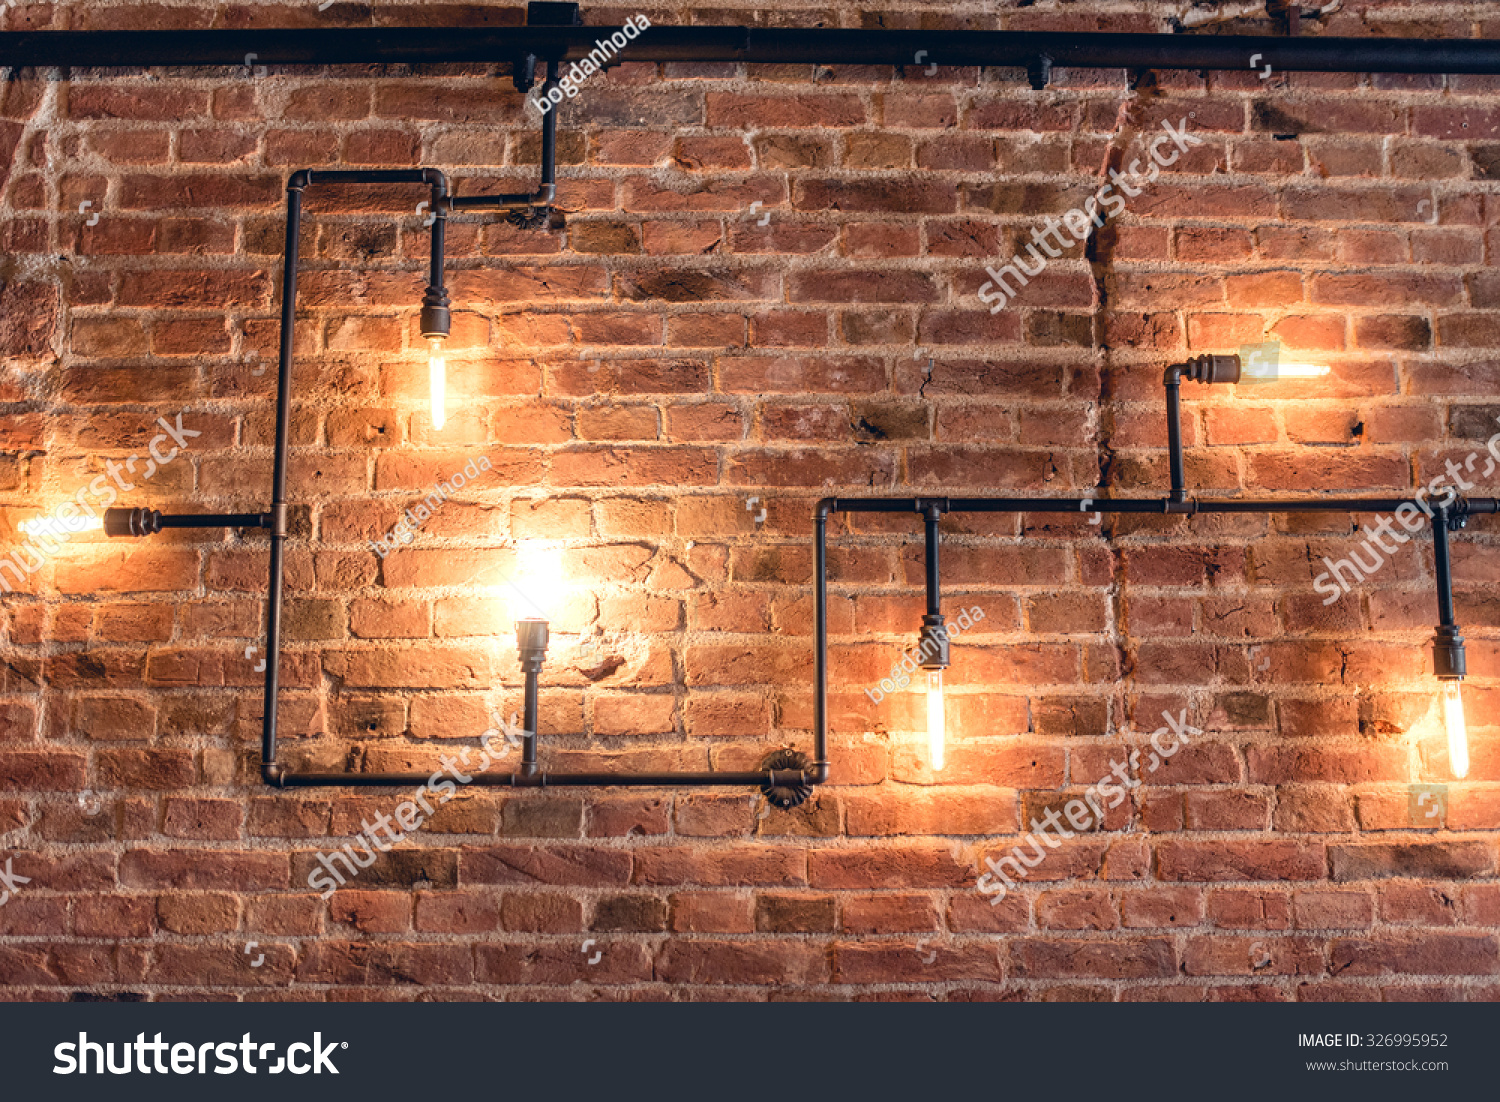 Rustic Walls Interior Interior Design Vintage Wall Rustic Design Stock Photo Edit Now